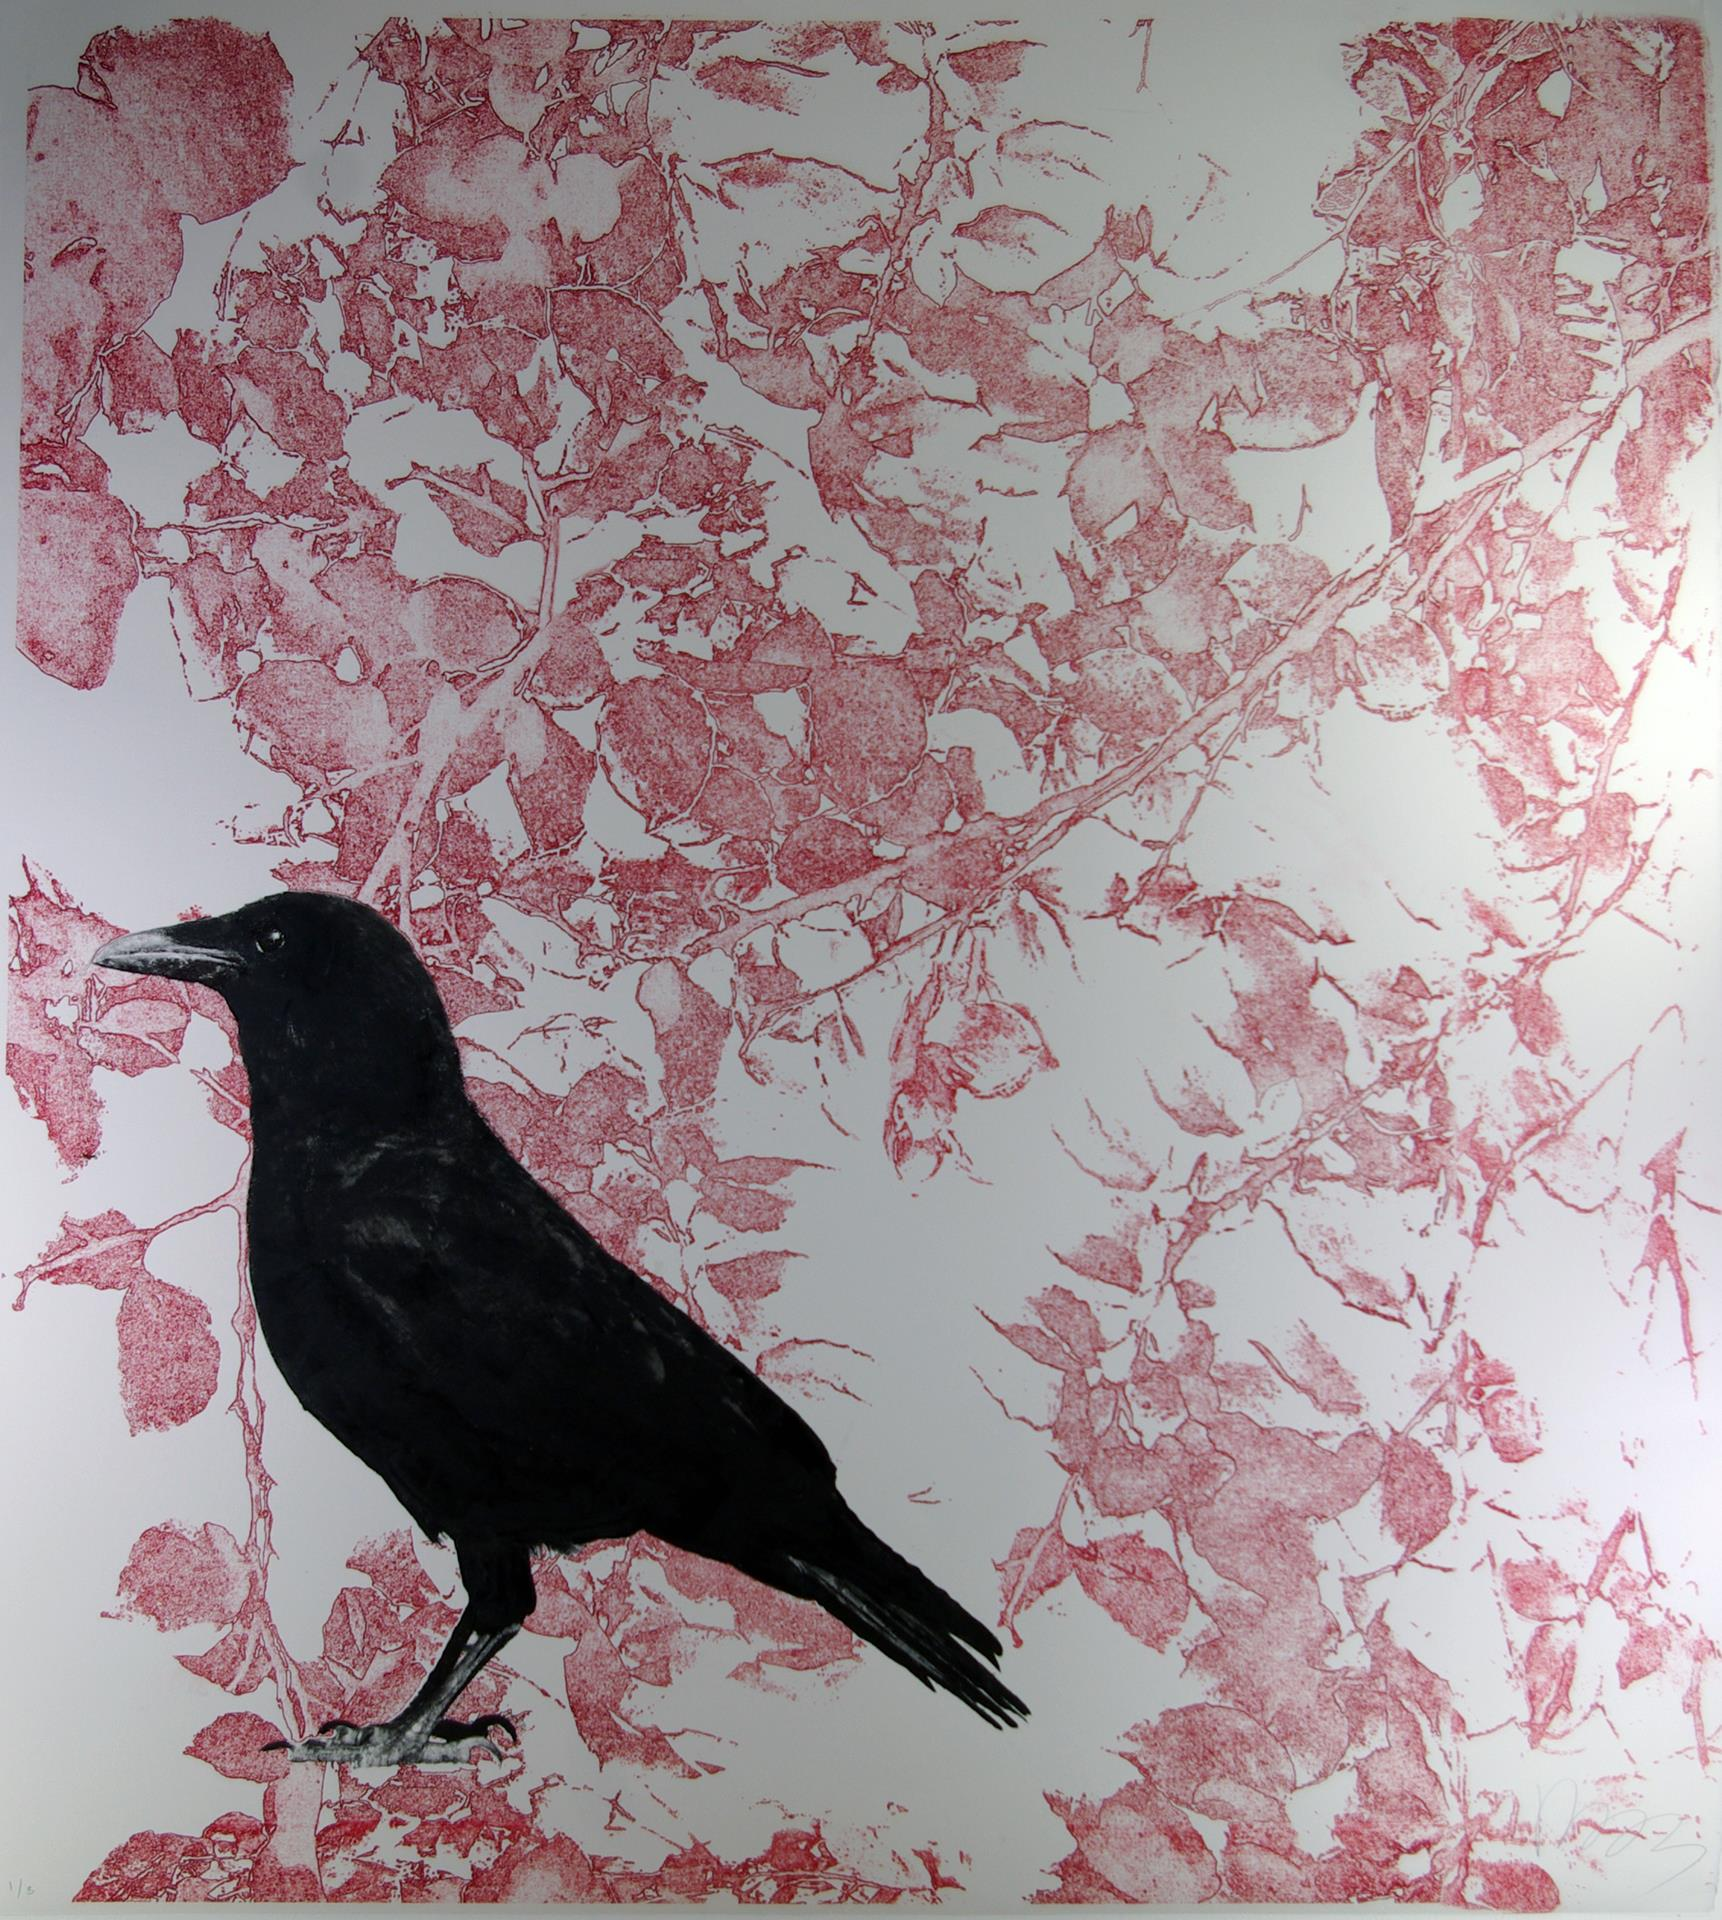 Molly Cliff Hilts, Crow and Beech